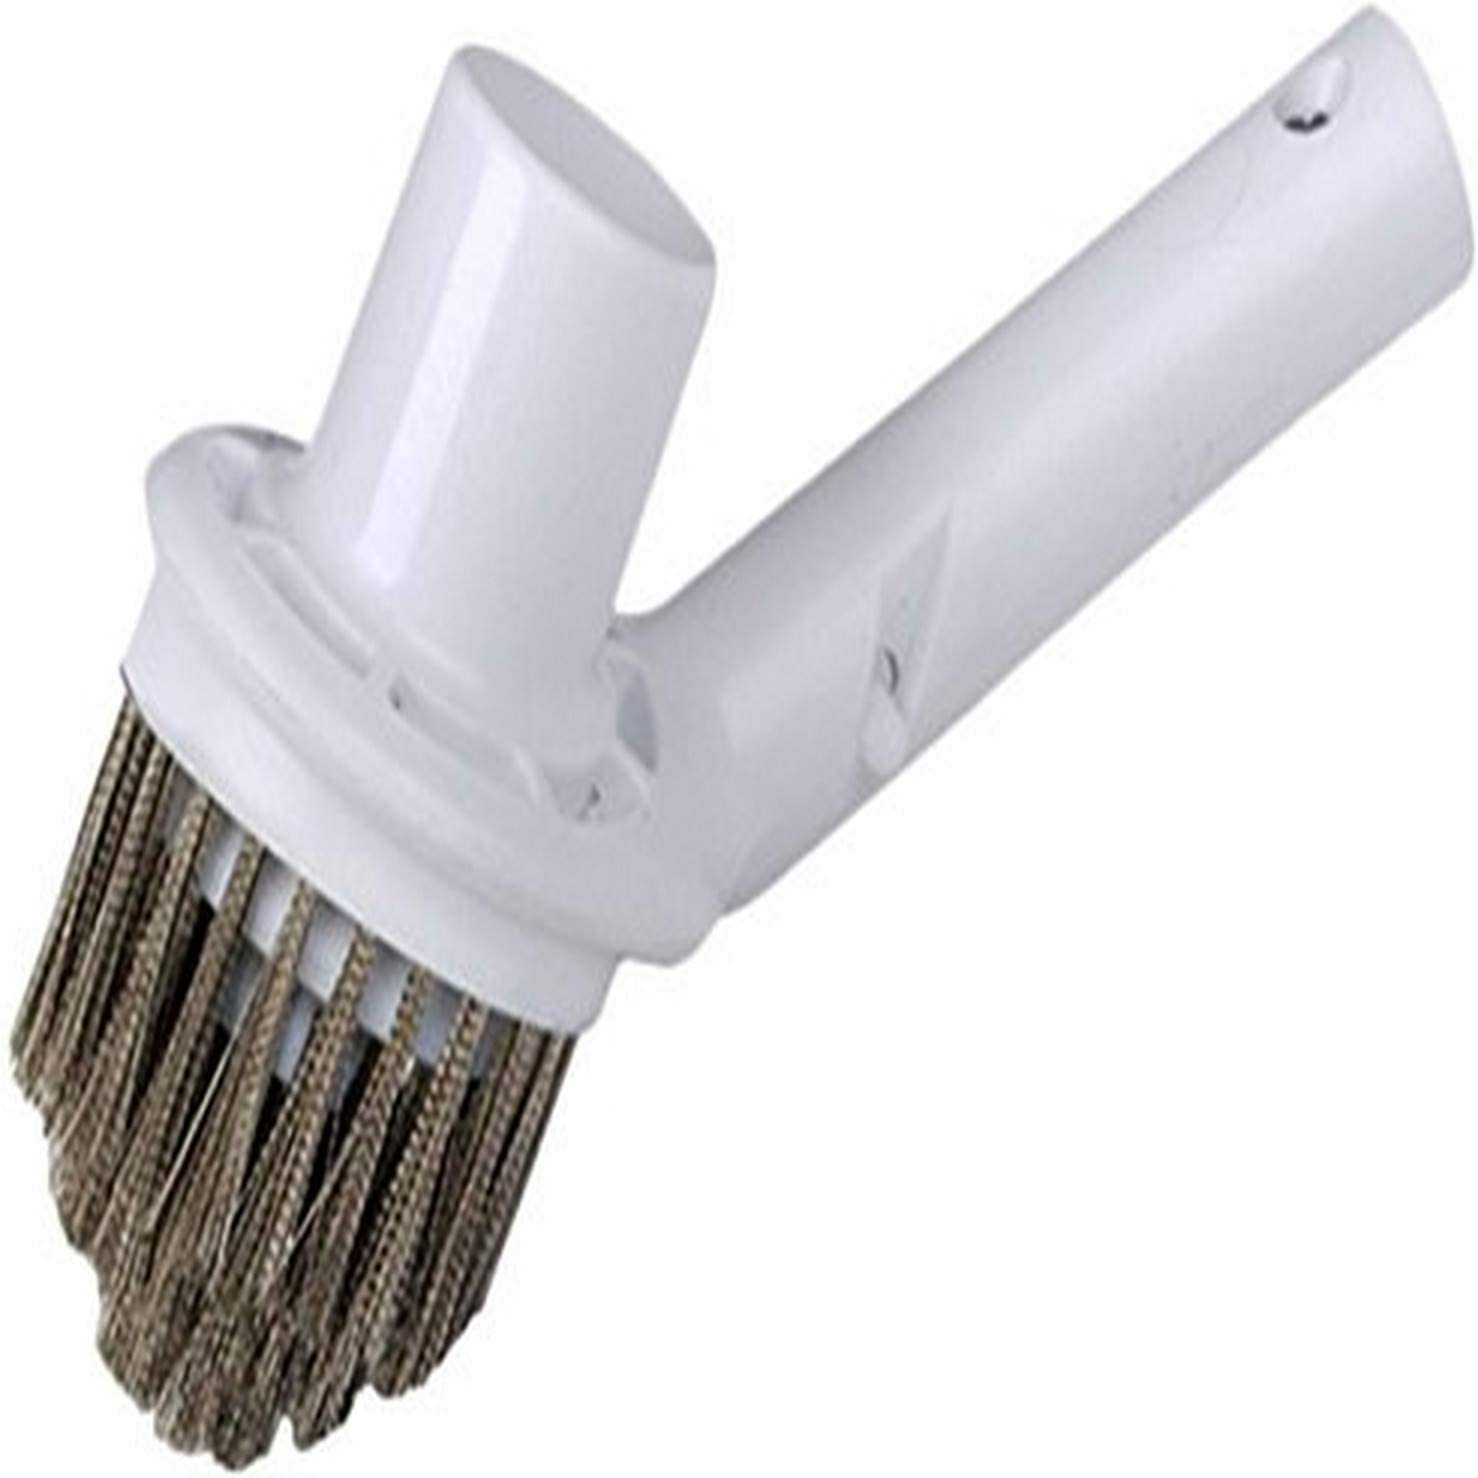 Pooline Corner Brush with Vacuum Connection - White Brush Body and Handle - Stainless Steel Bristles